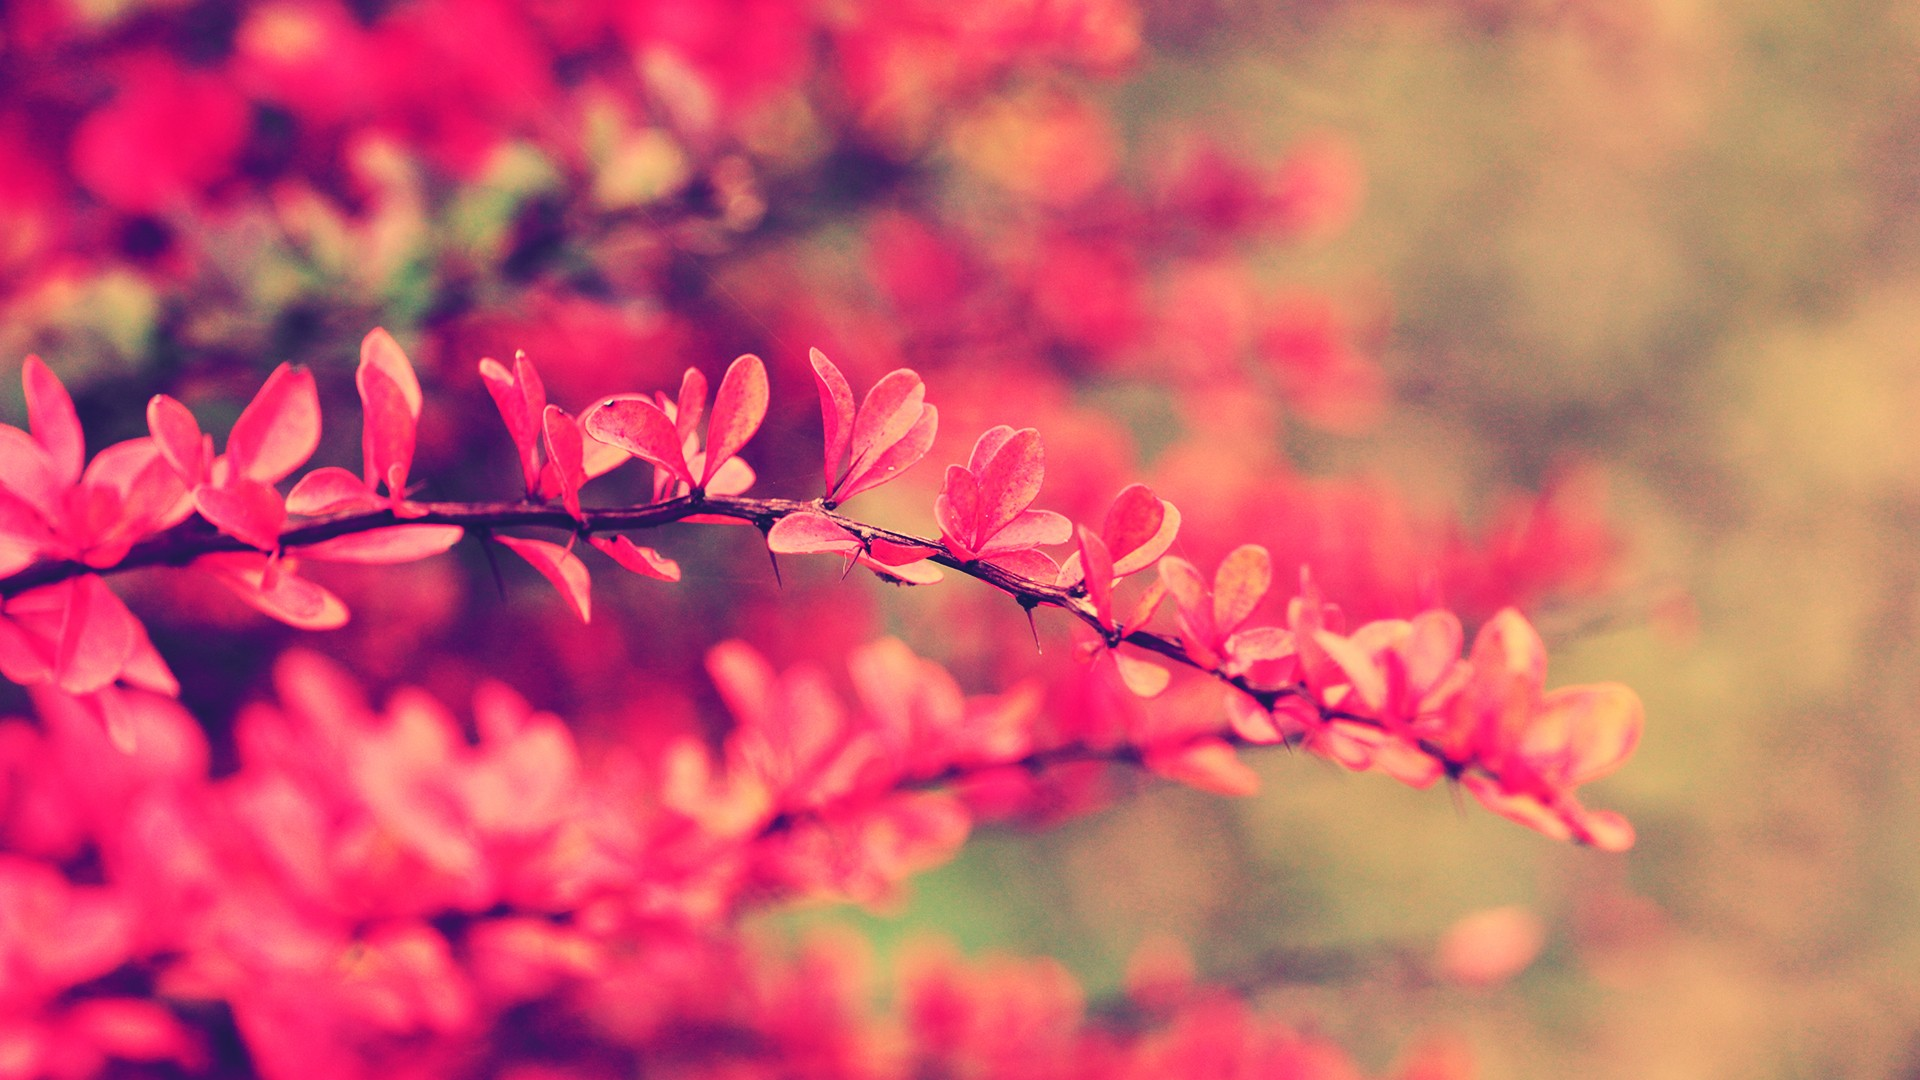 wallpapers pink flowers - photo #13